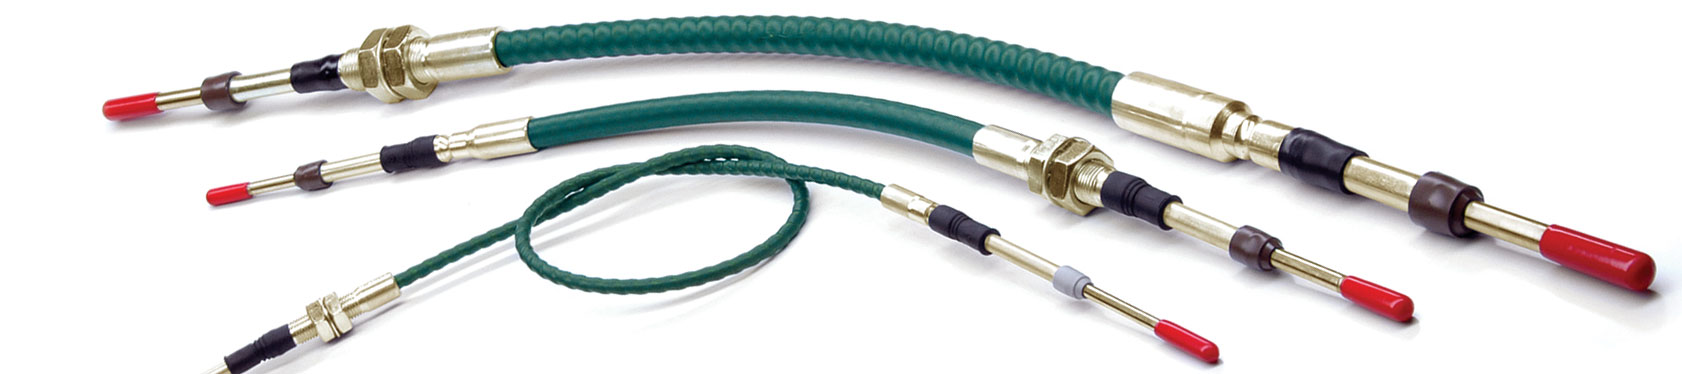 Cablecraft Control Cables